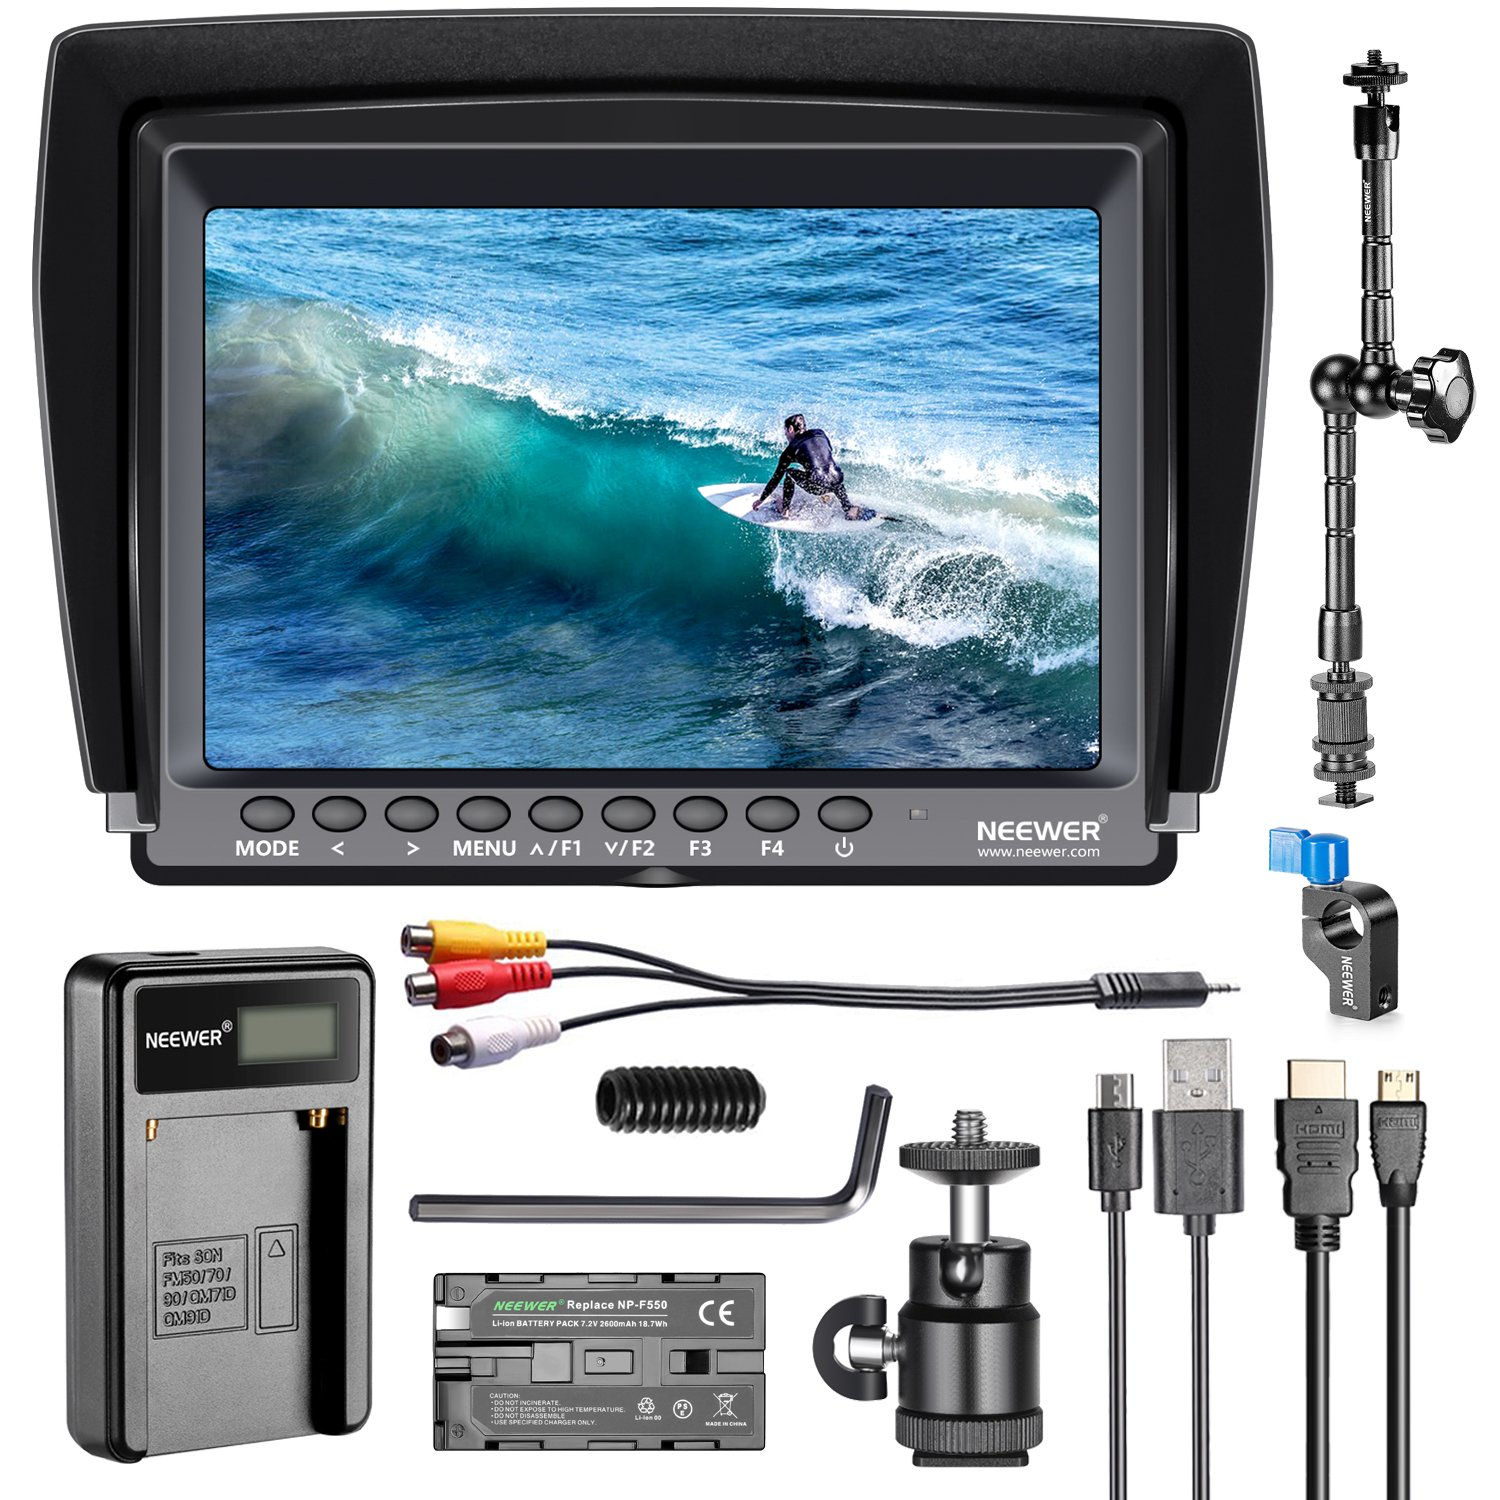 Neewer F100 7-inch 1280x800 IPS Screen Camera Field Monitor Kit: Support 4k input with 2600mAh Rechargeable Li-ion Battery, USB Battery Charger and 11.8-inch Magic Arm for DSLR Camera/Camcorder by Neewer